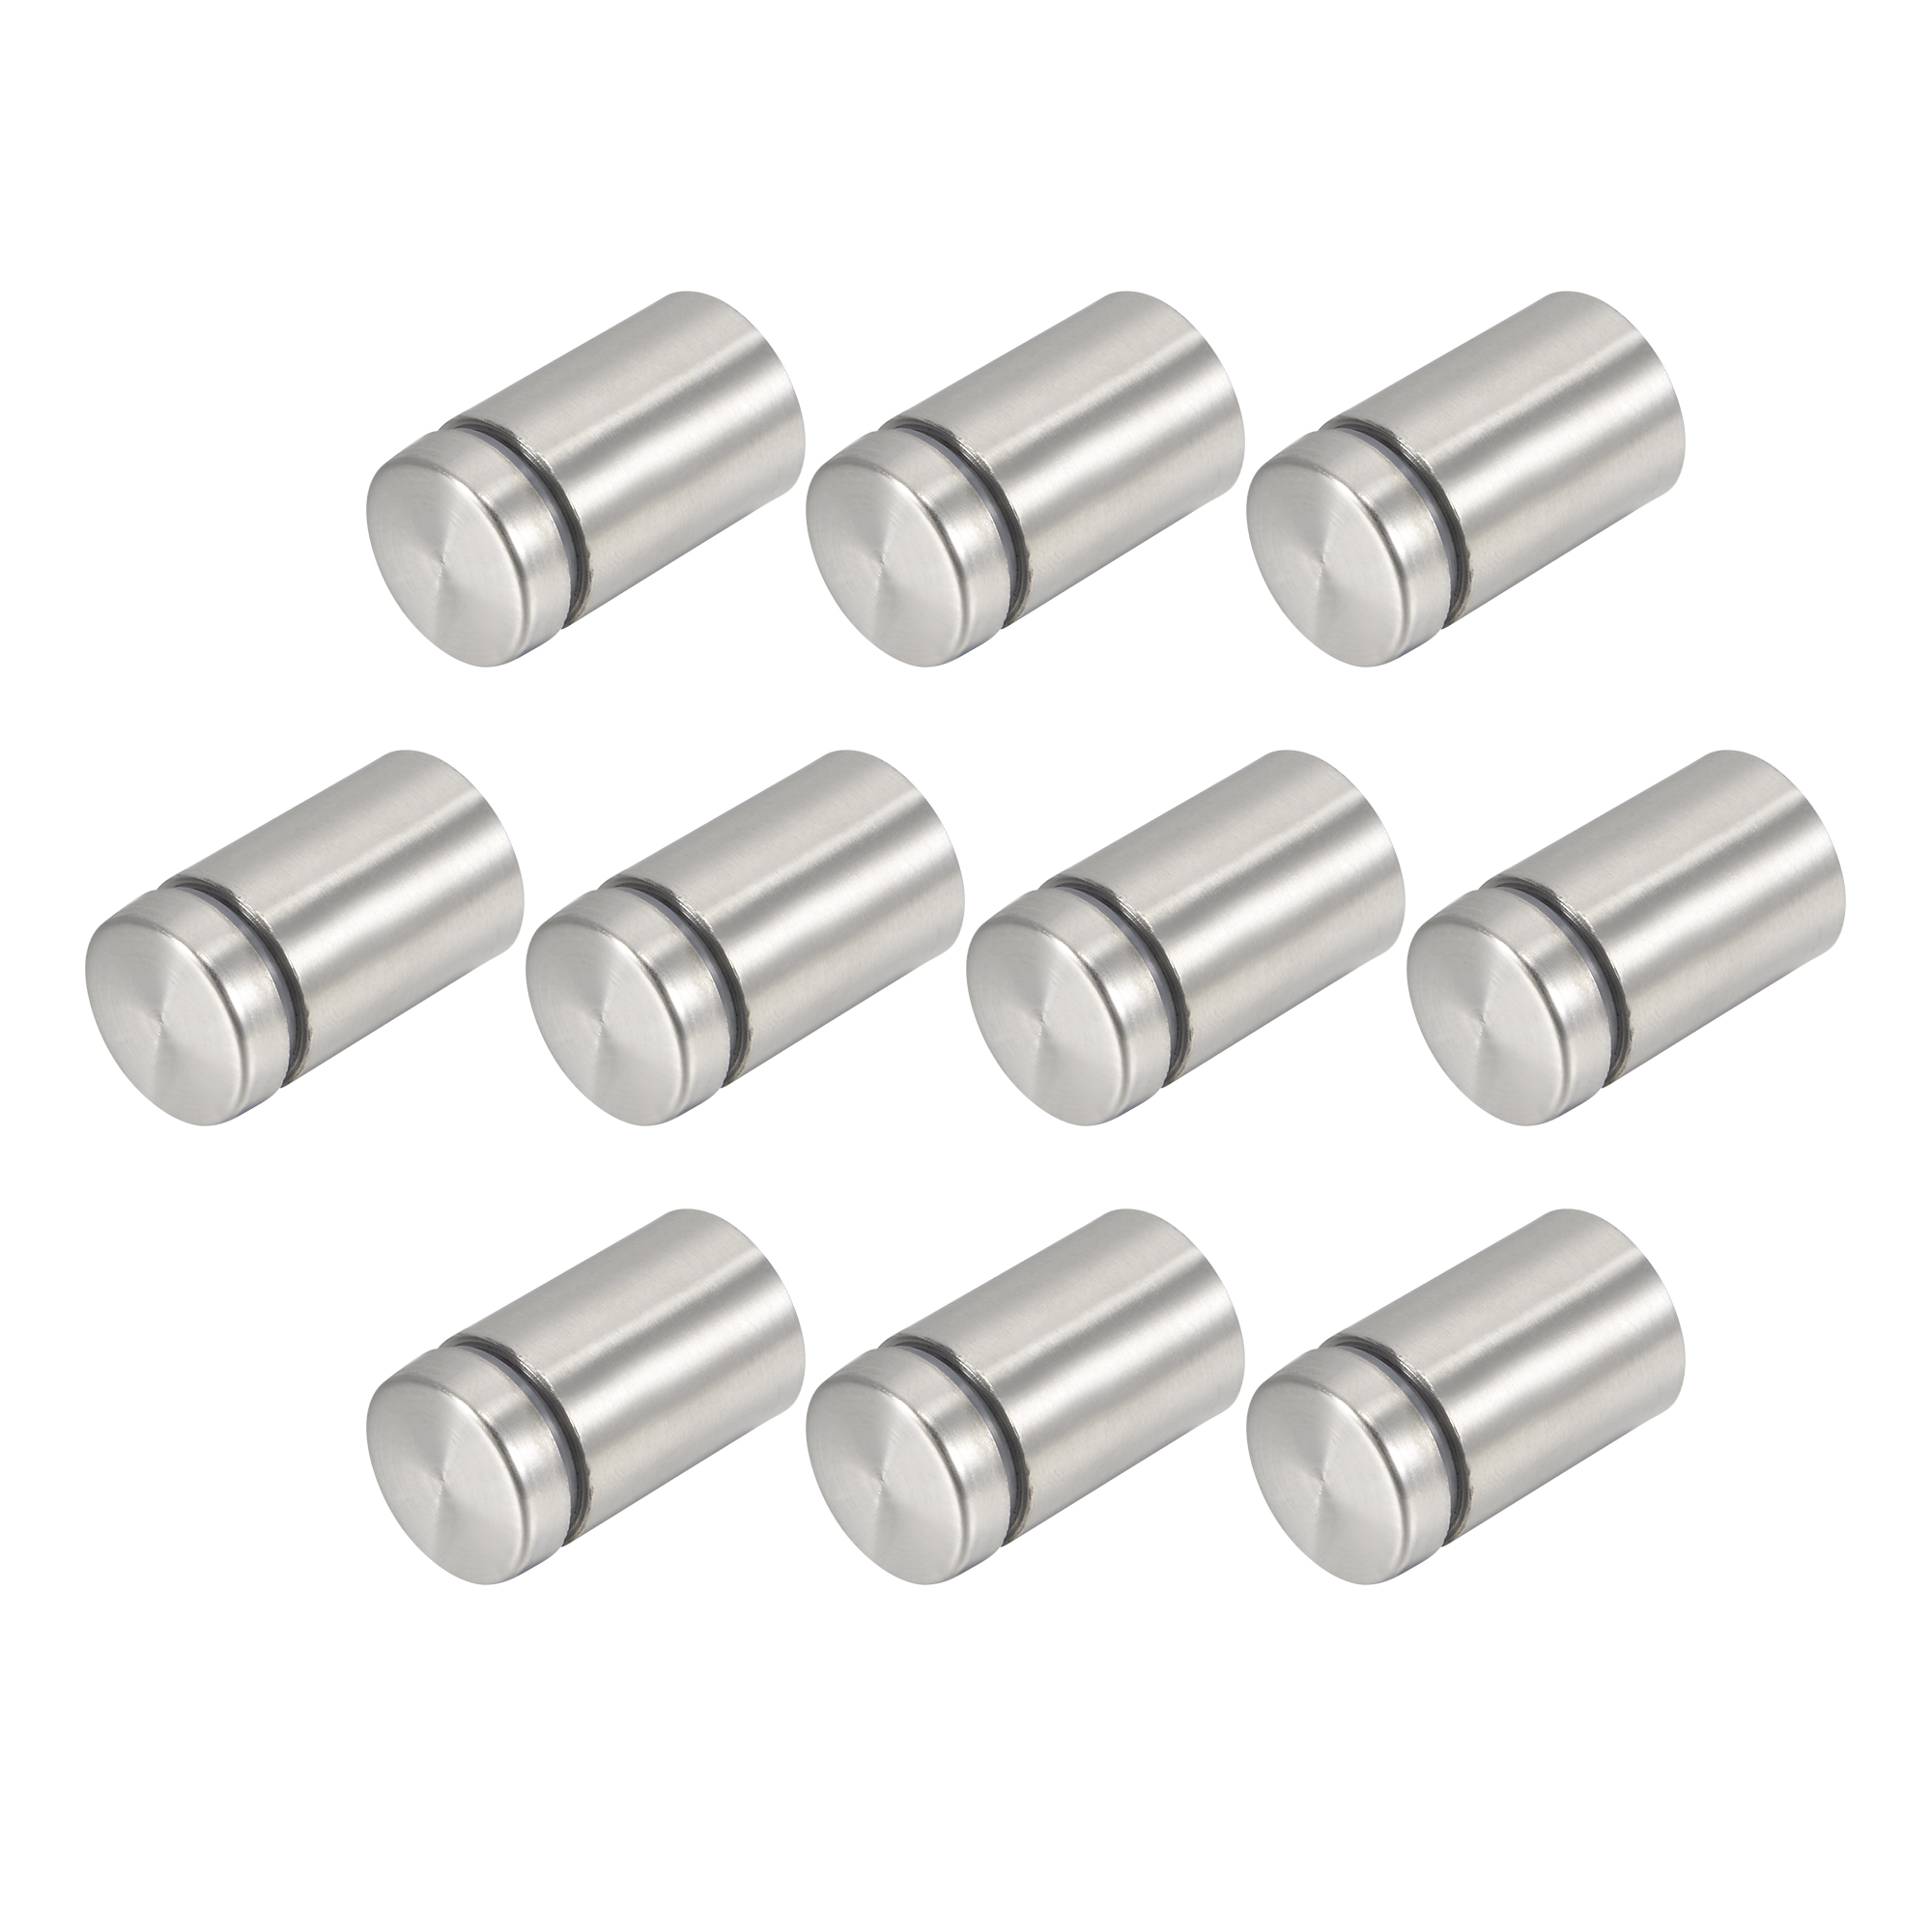 10 Pcs Silver Tone Stainless Steel 19 x 32mm Standoff Hardware for Glass